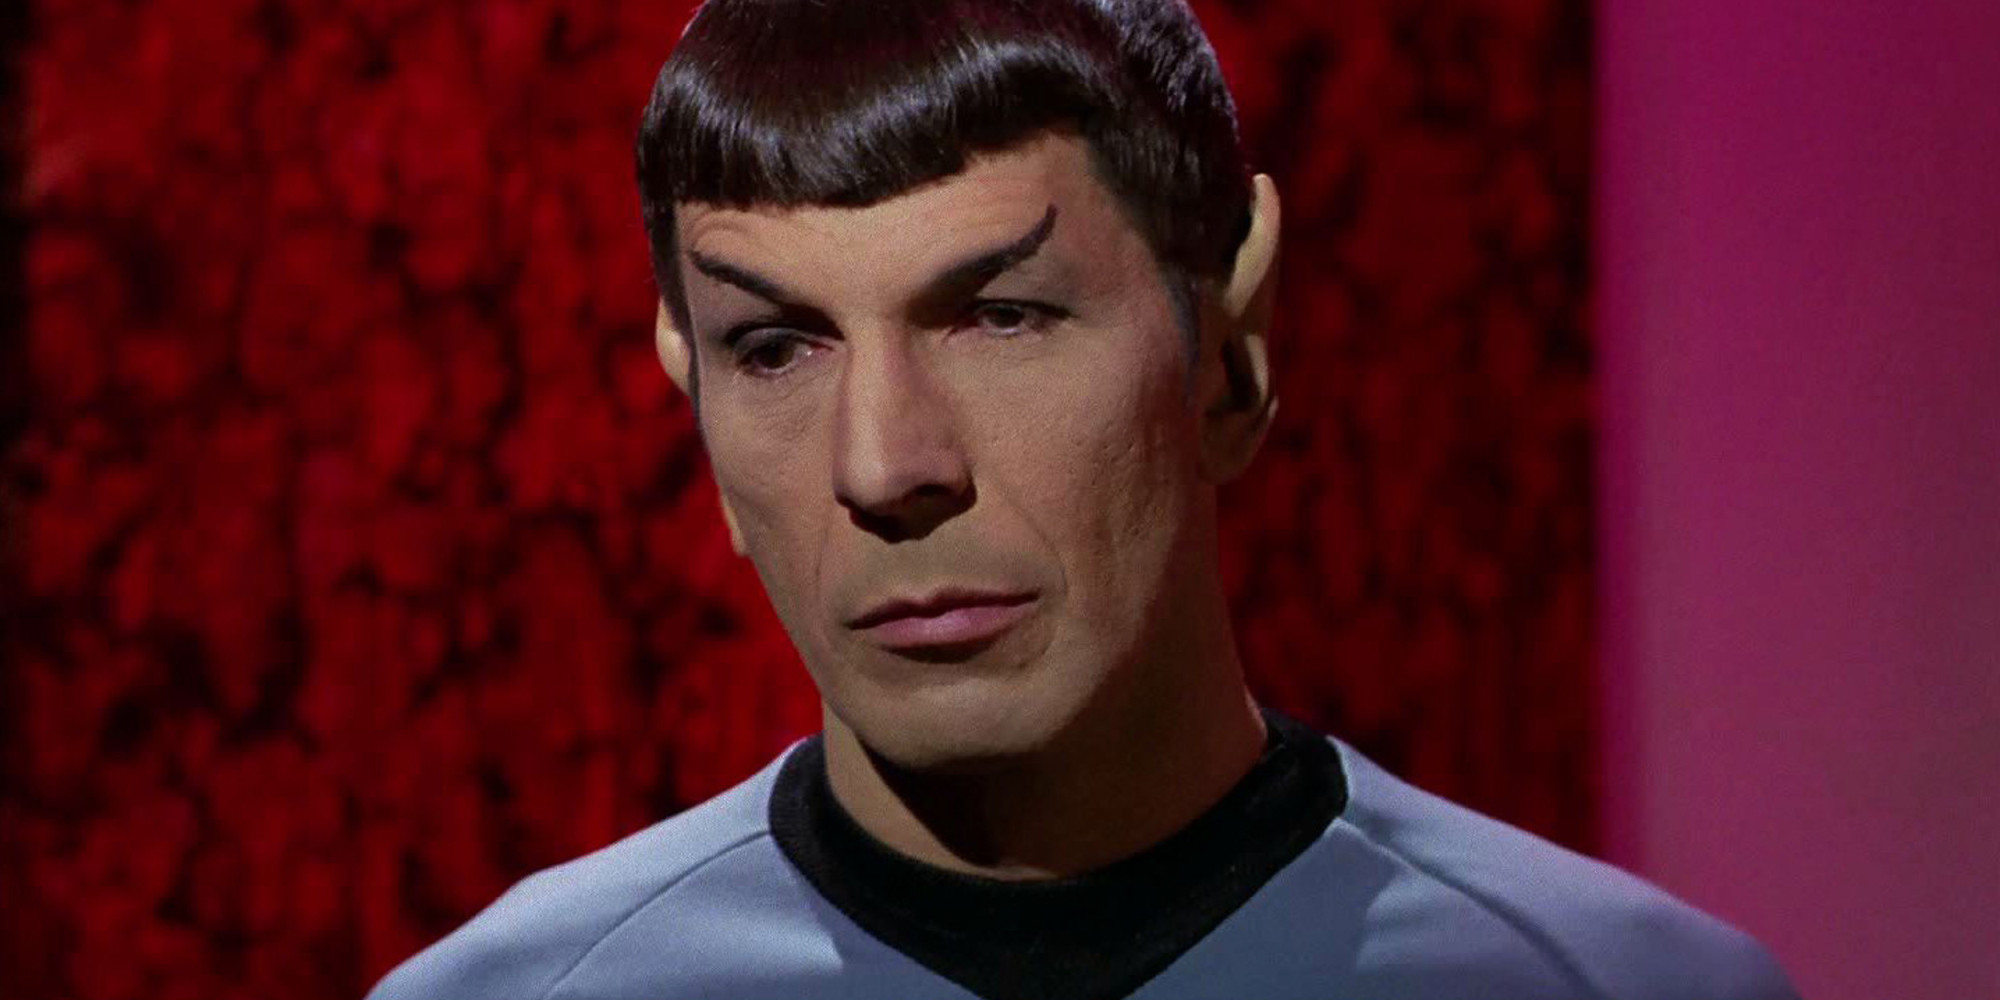 Leonard Nimoy Quotes Obama Mourns 'star Trek' Icon Leonard Nimoy 'i Loved Spock